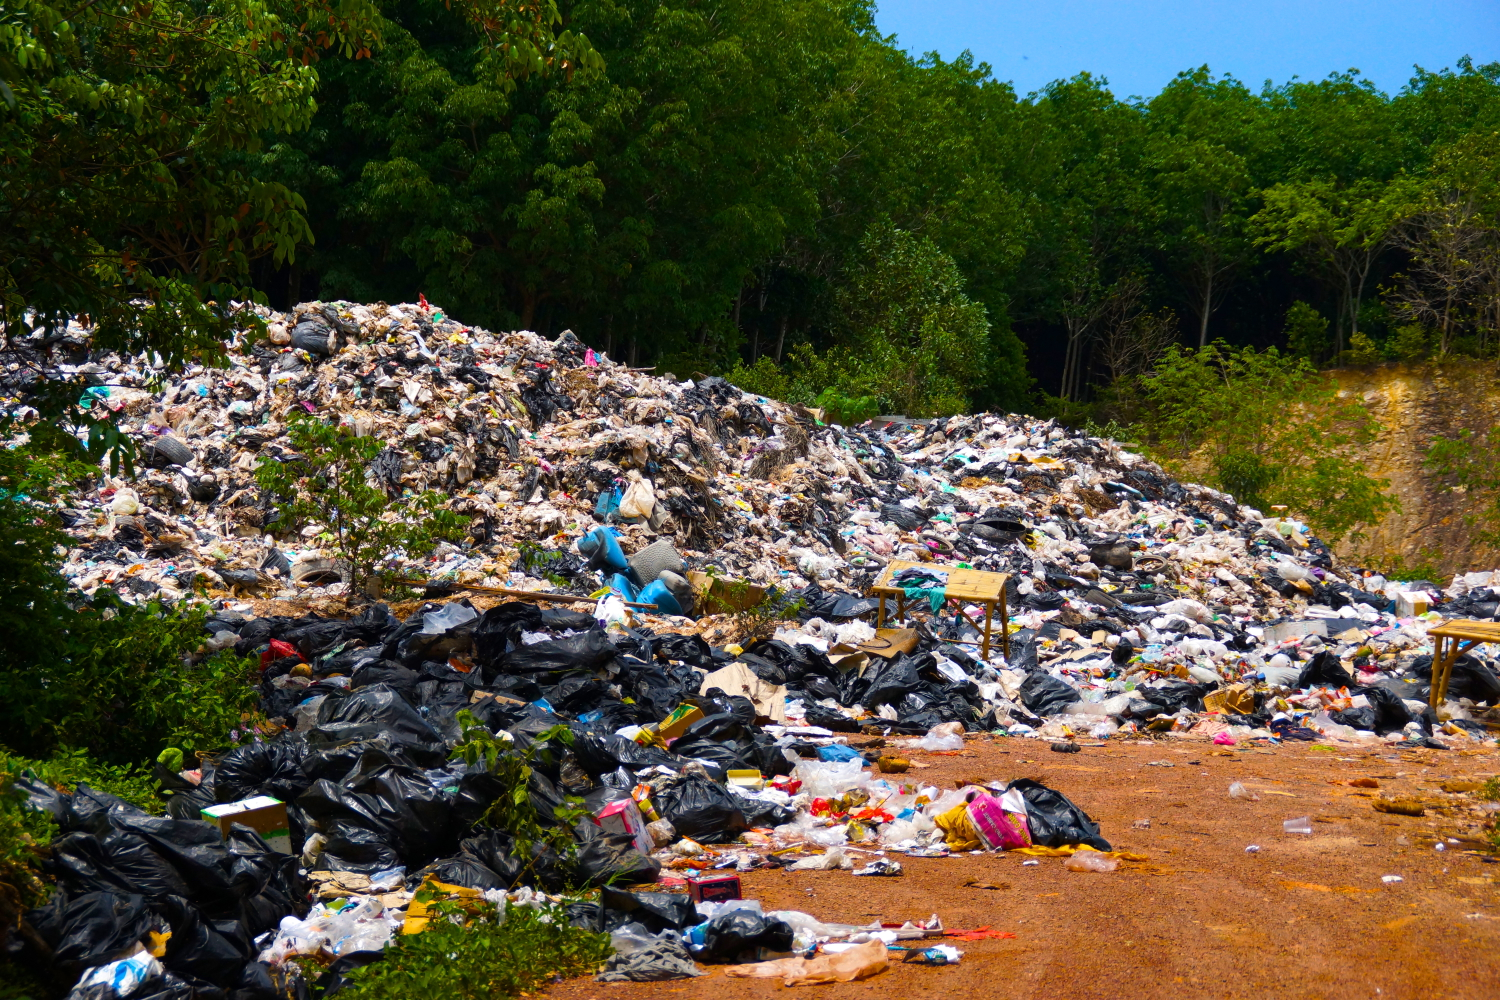 A very quick tour of the local dump